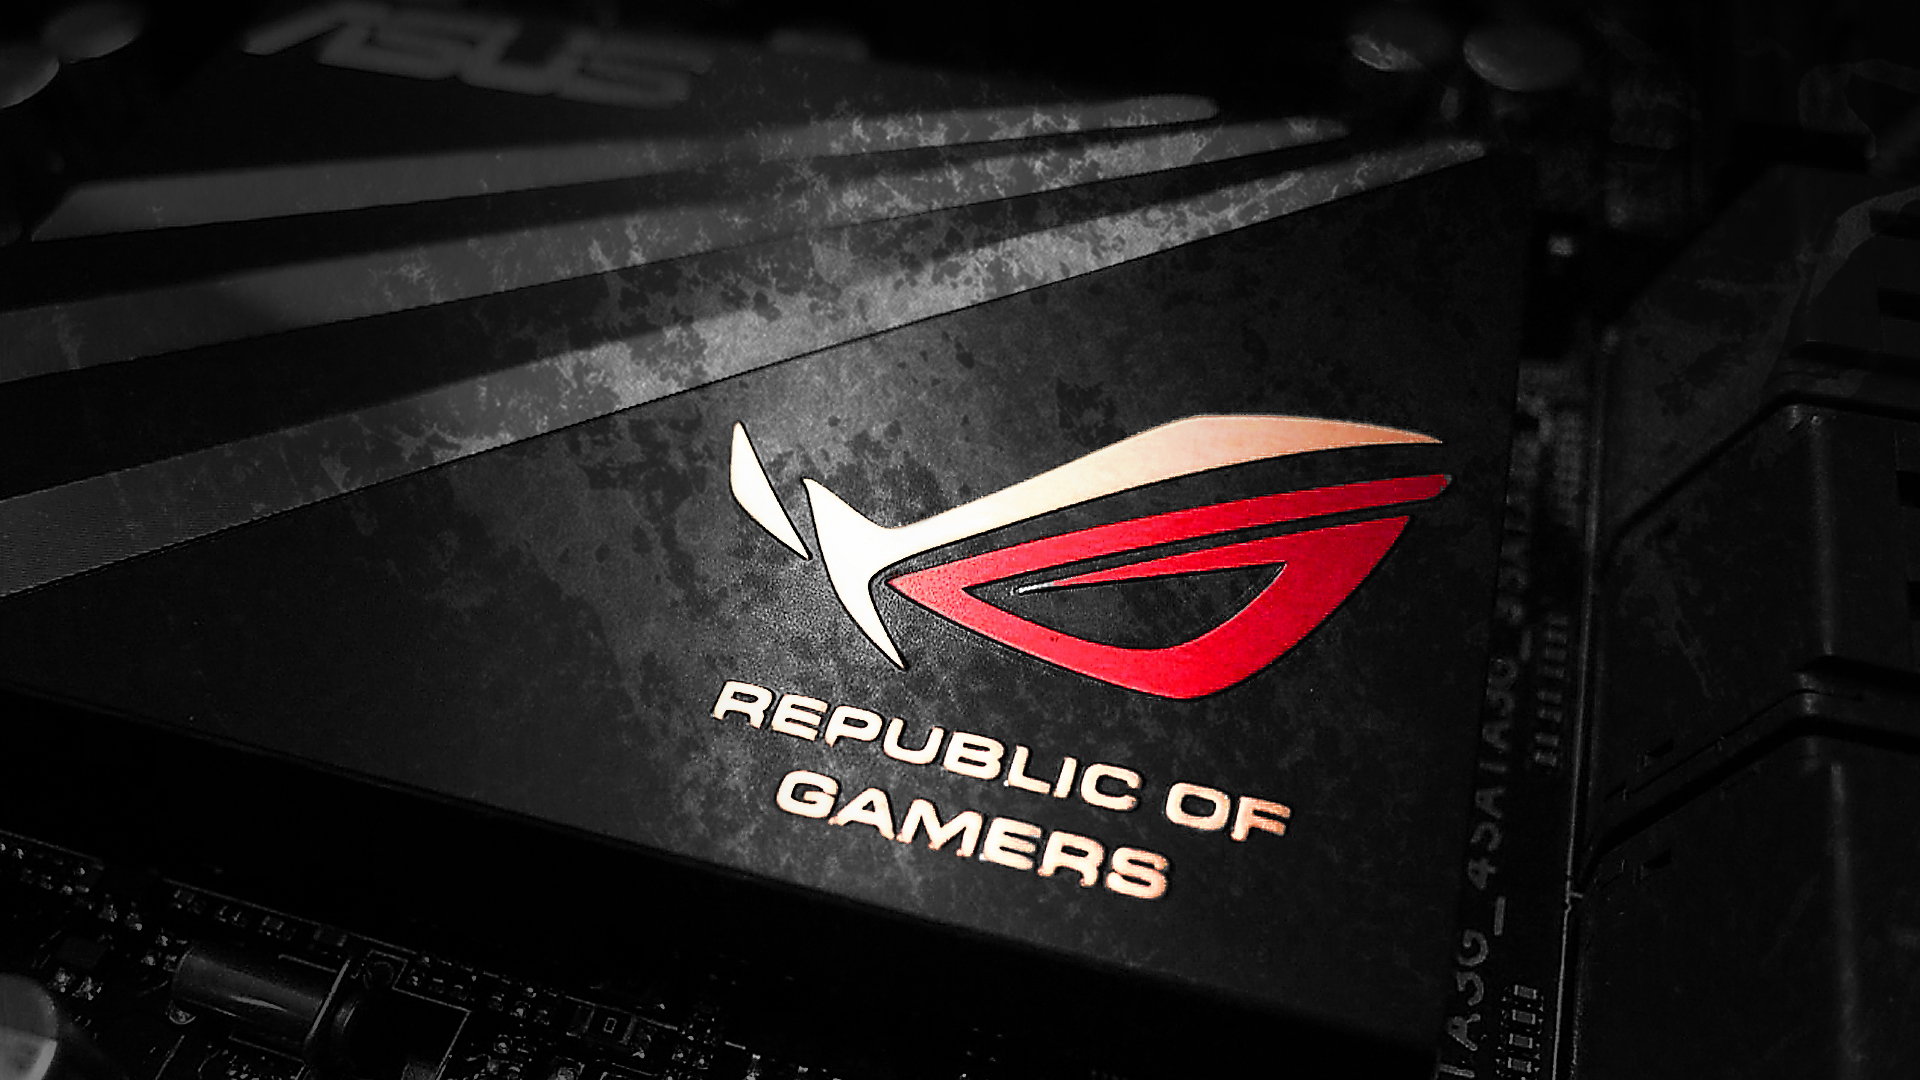 Images of Asus ROG | 1920x1080